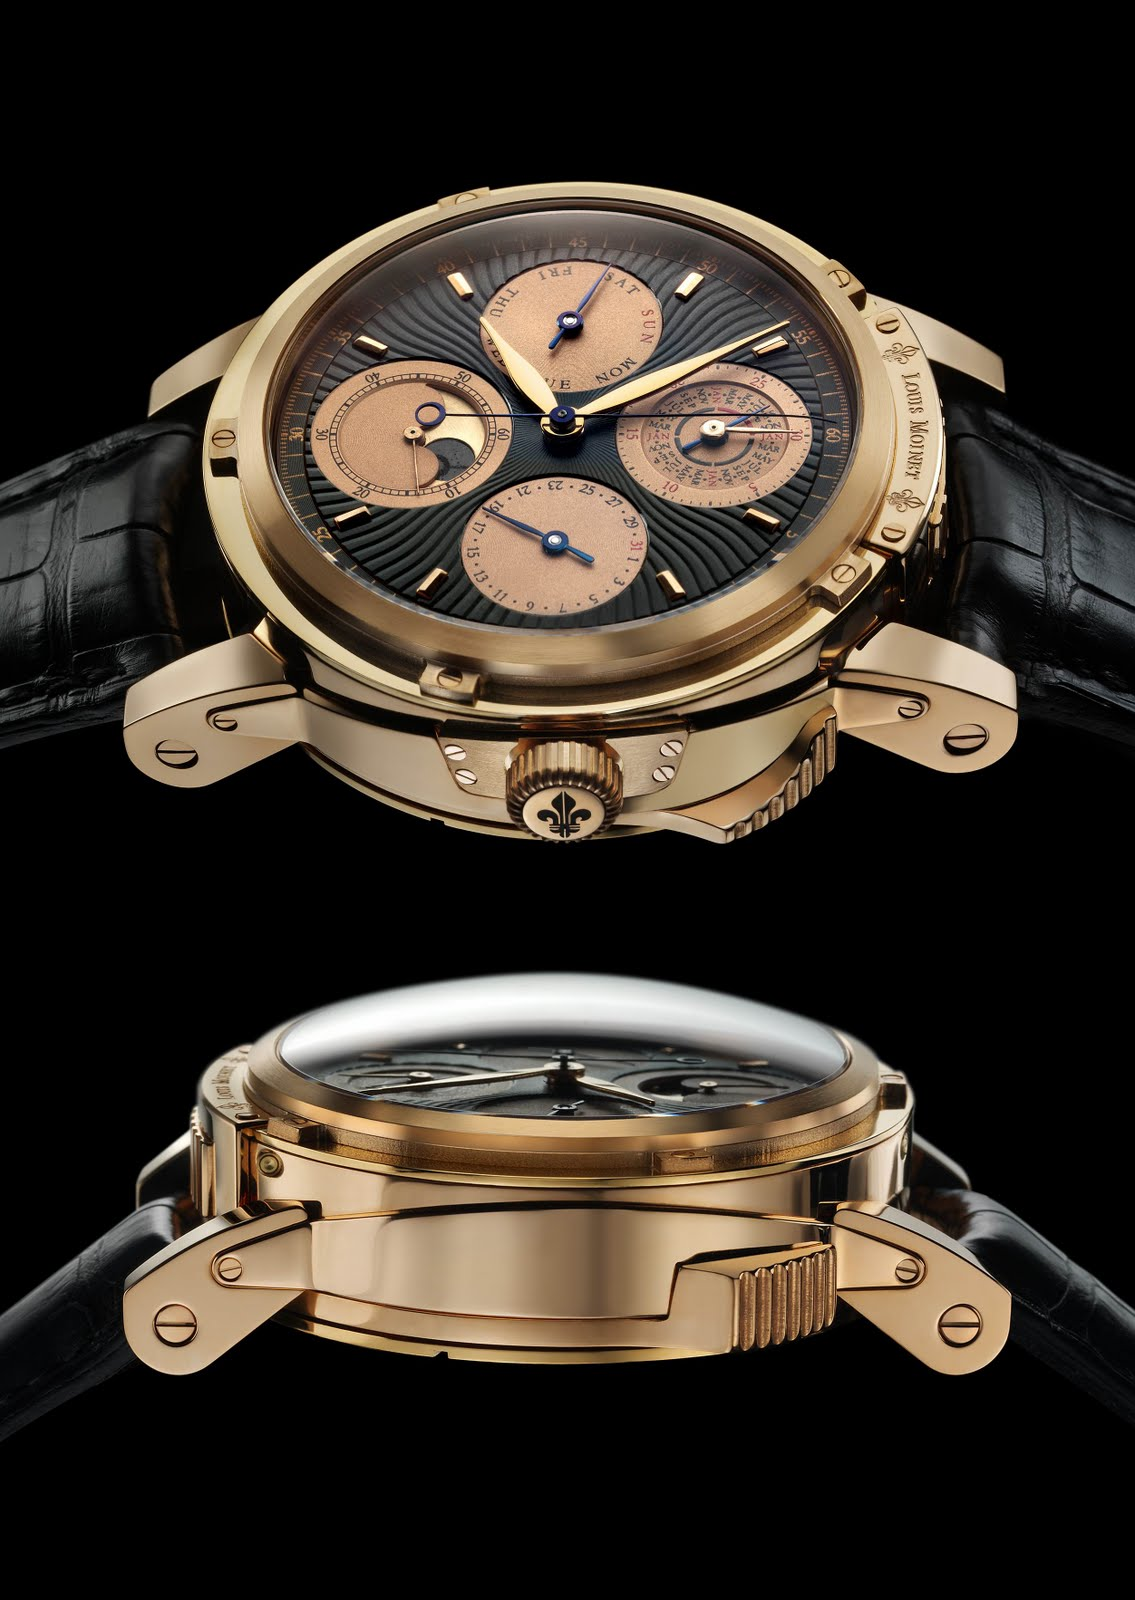 Louis Moinet Magistralis luxury watch